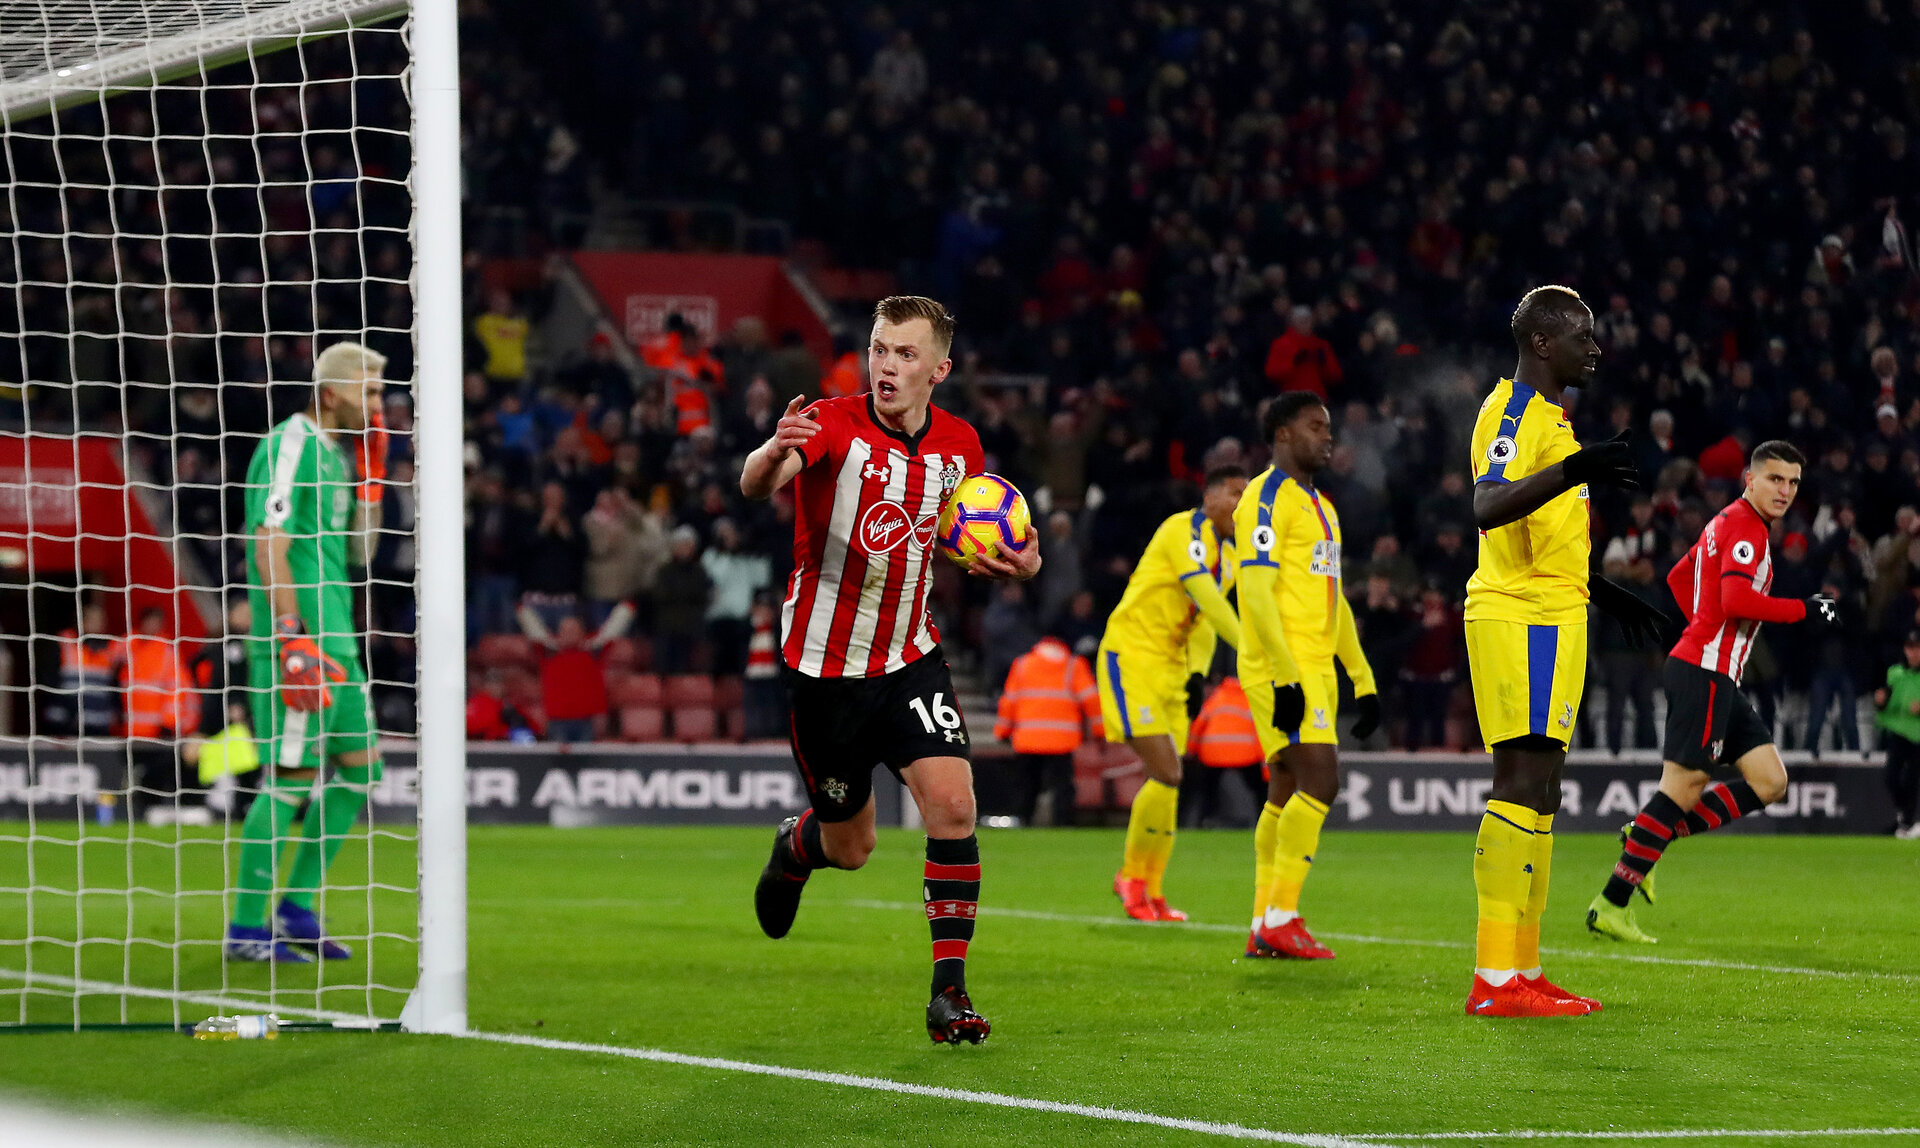 SOUTHAMPTON, ENGLAND - JANUARY 30: James Ward-Prowse of Southampton celebrates after equalising during the Premier League match between Southampton FC and Crystal Palace at St Mary's Stadium on January 30, 2019 in Southampton, United Kingdom. (Photo by Matt Watson/Southampton FC via Getty Images)